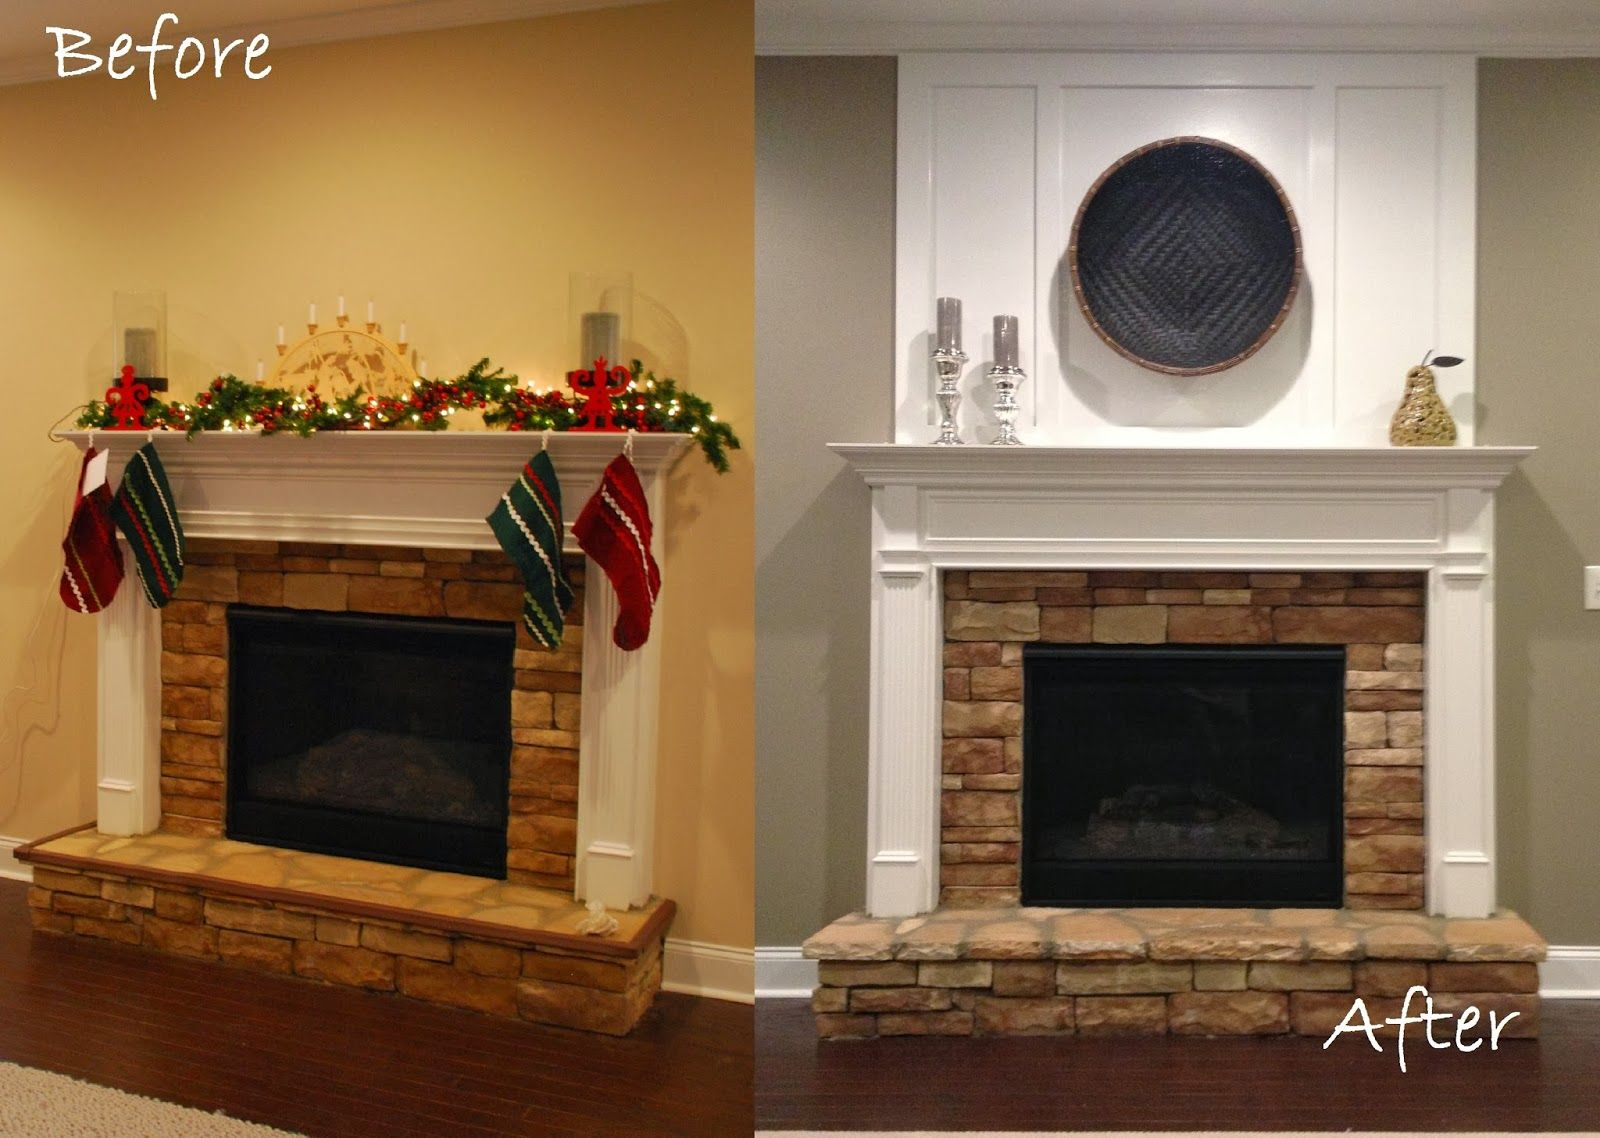 Sew Sweet Cottage DIY Board and Batten Fireplace treatment